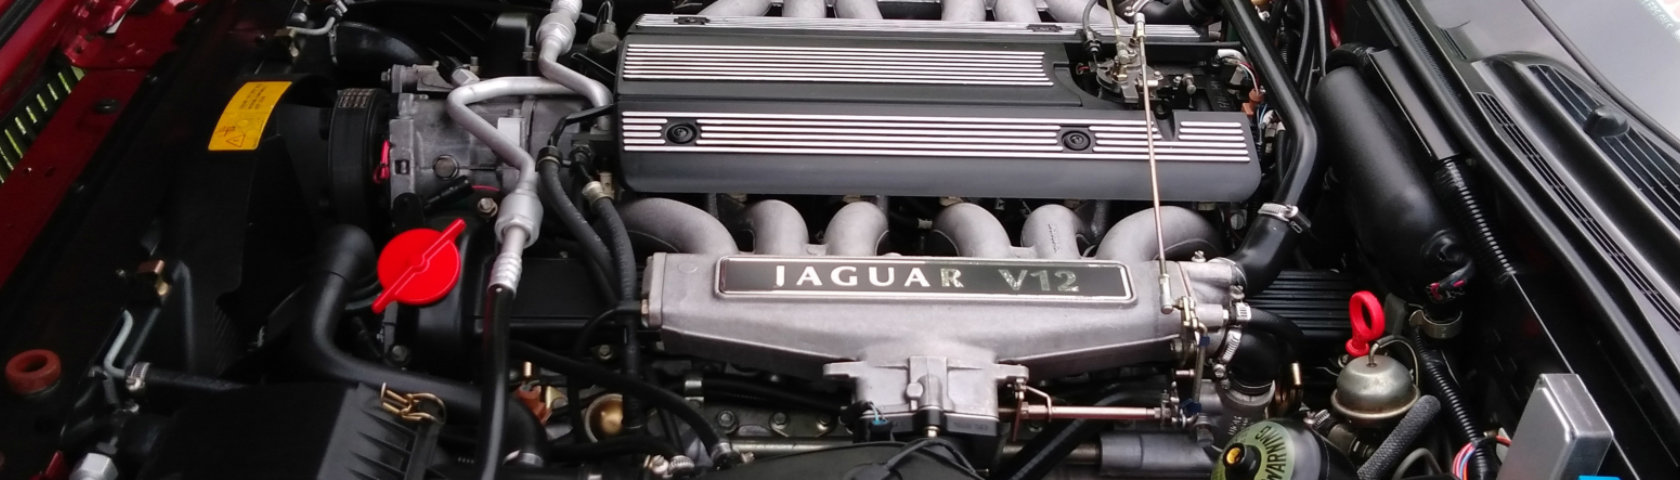 Jaguar Xj40 Xj12 Windsor Engine Bay